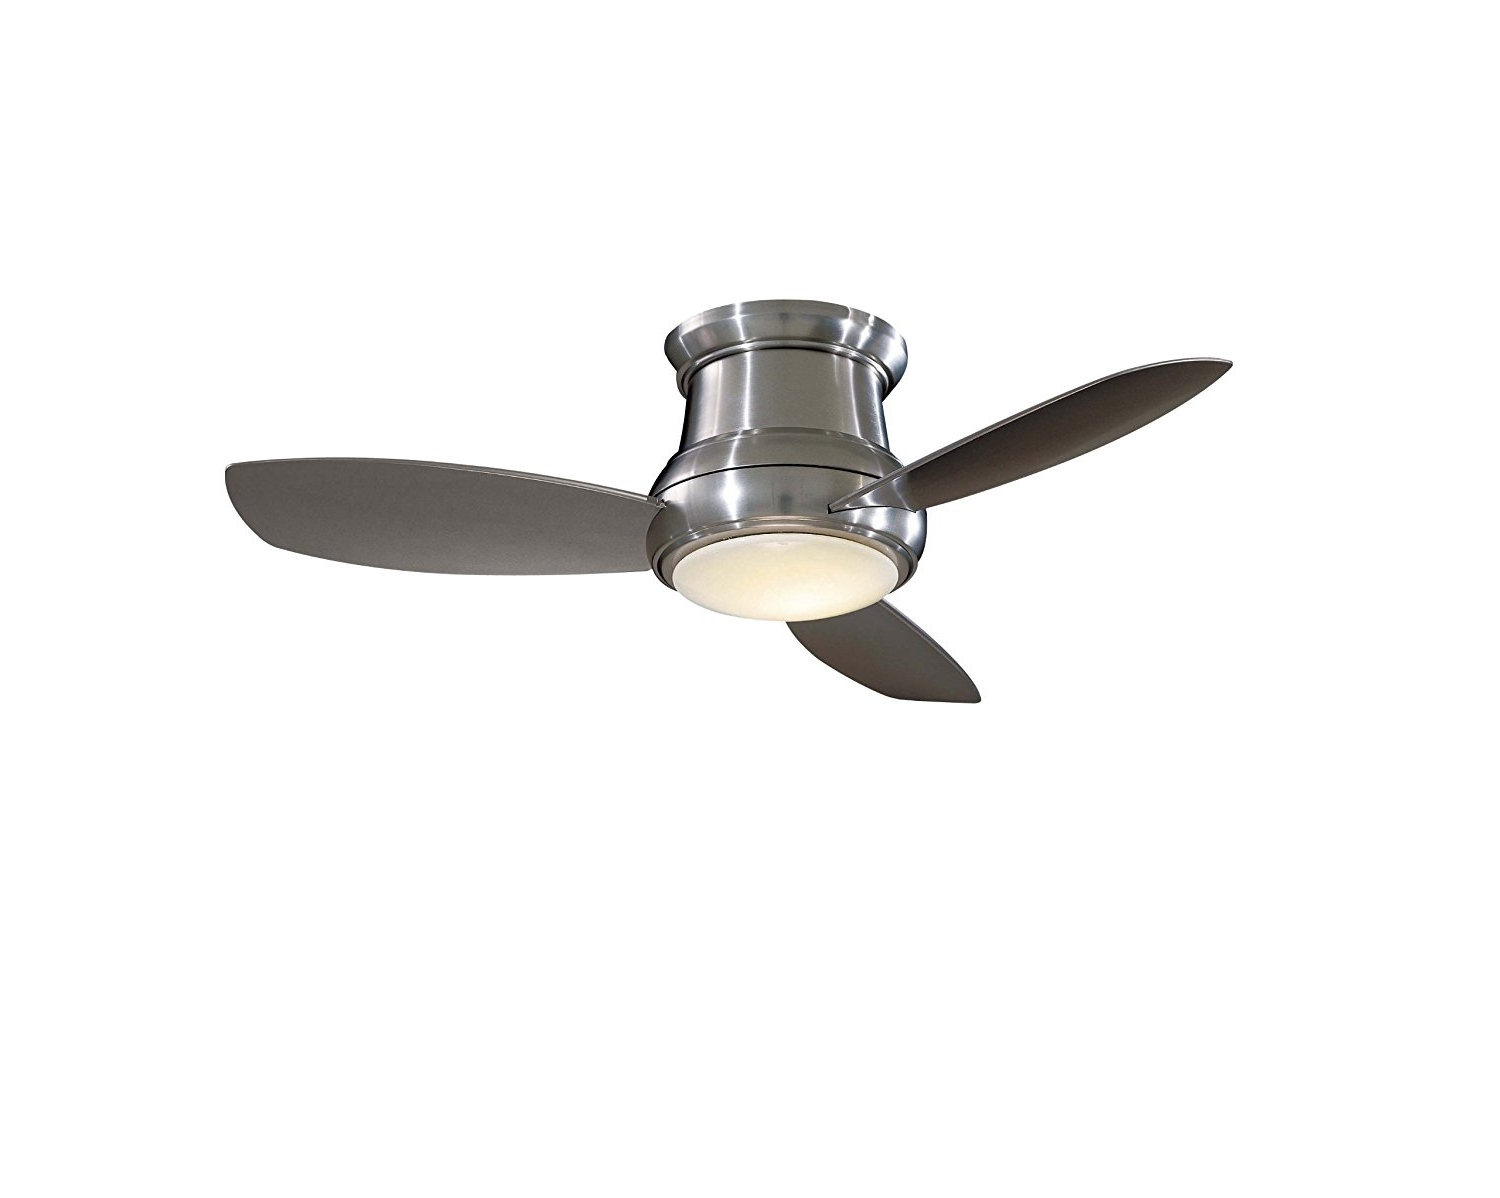 Ceiling Fan: Captivating Flush Mount Ceiling Fan With Light Ideas 32 With Regard To Most Current Outdoor Ceiling Fans For 7 Foot Ceilings (View 8 of 20)